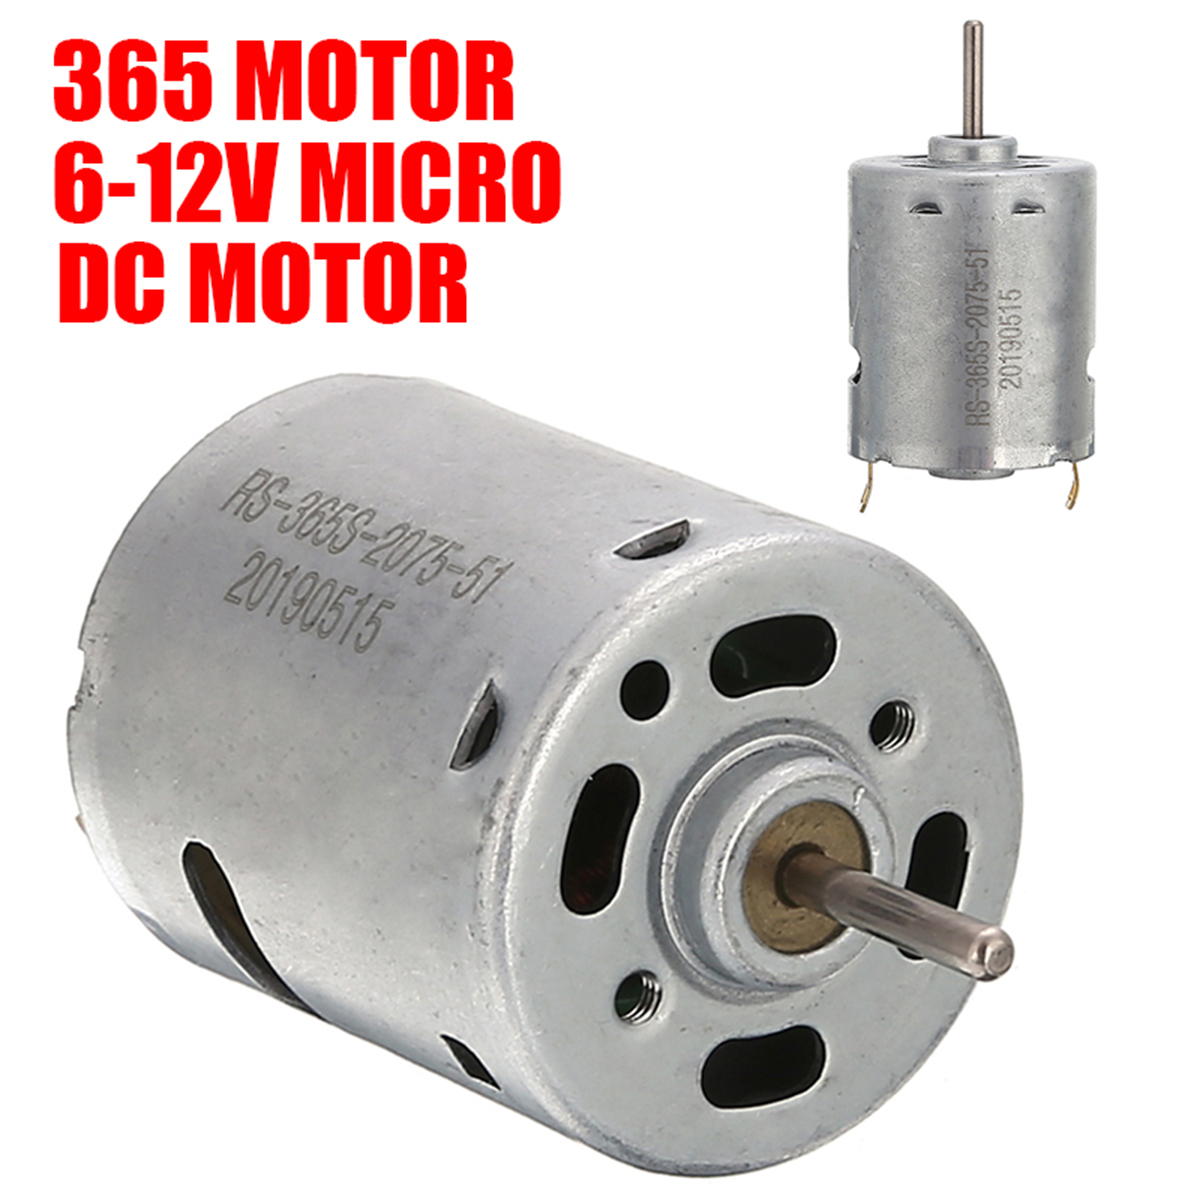 DC 6-12V 5000RPM High Speed Mini DC Motor 365 Low Noise for DIY Small Magnetic Electric Drill Motor